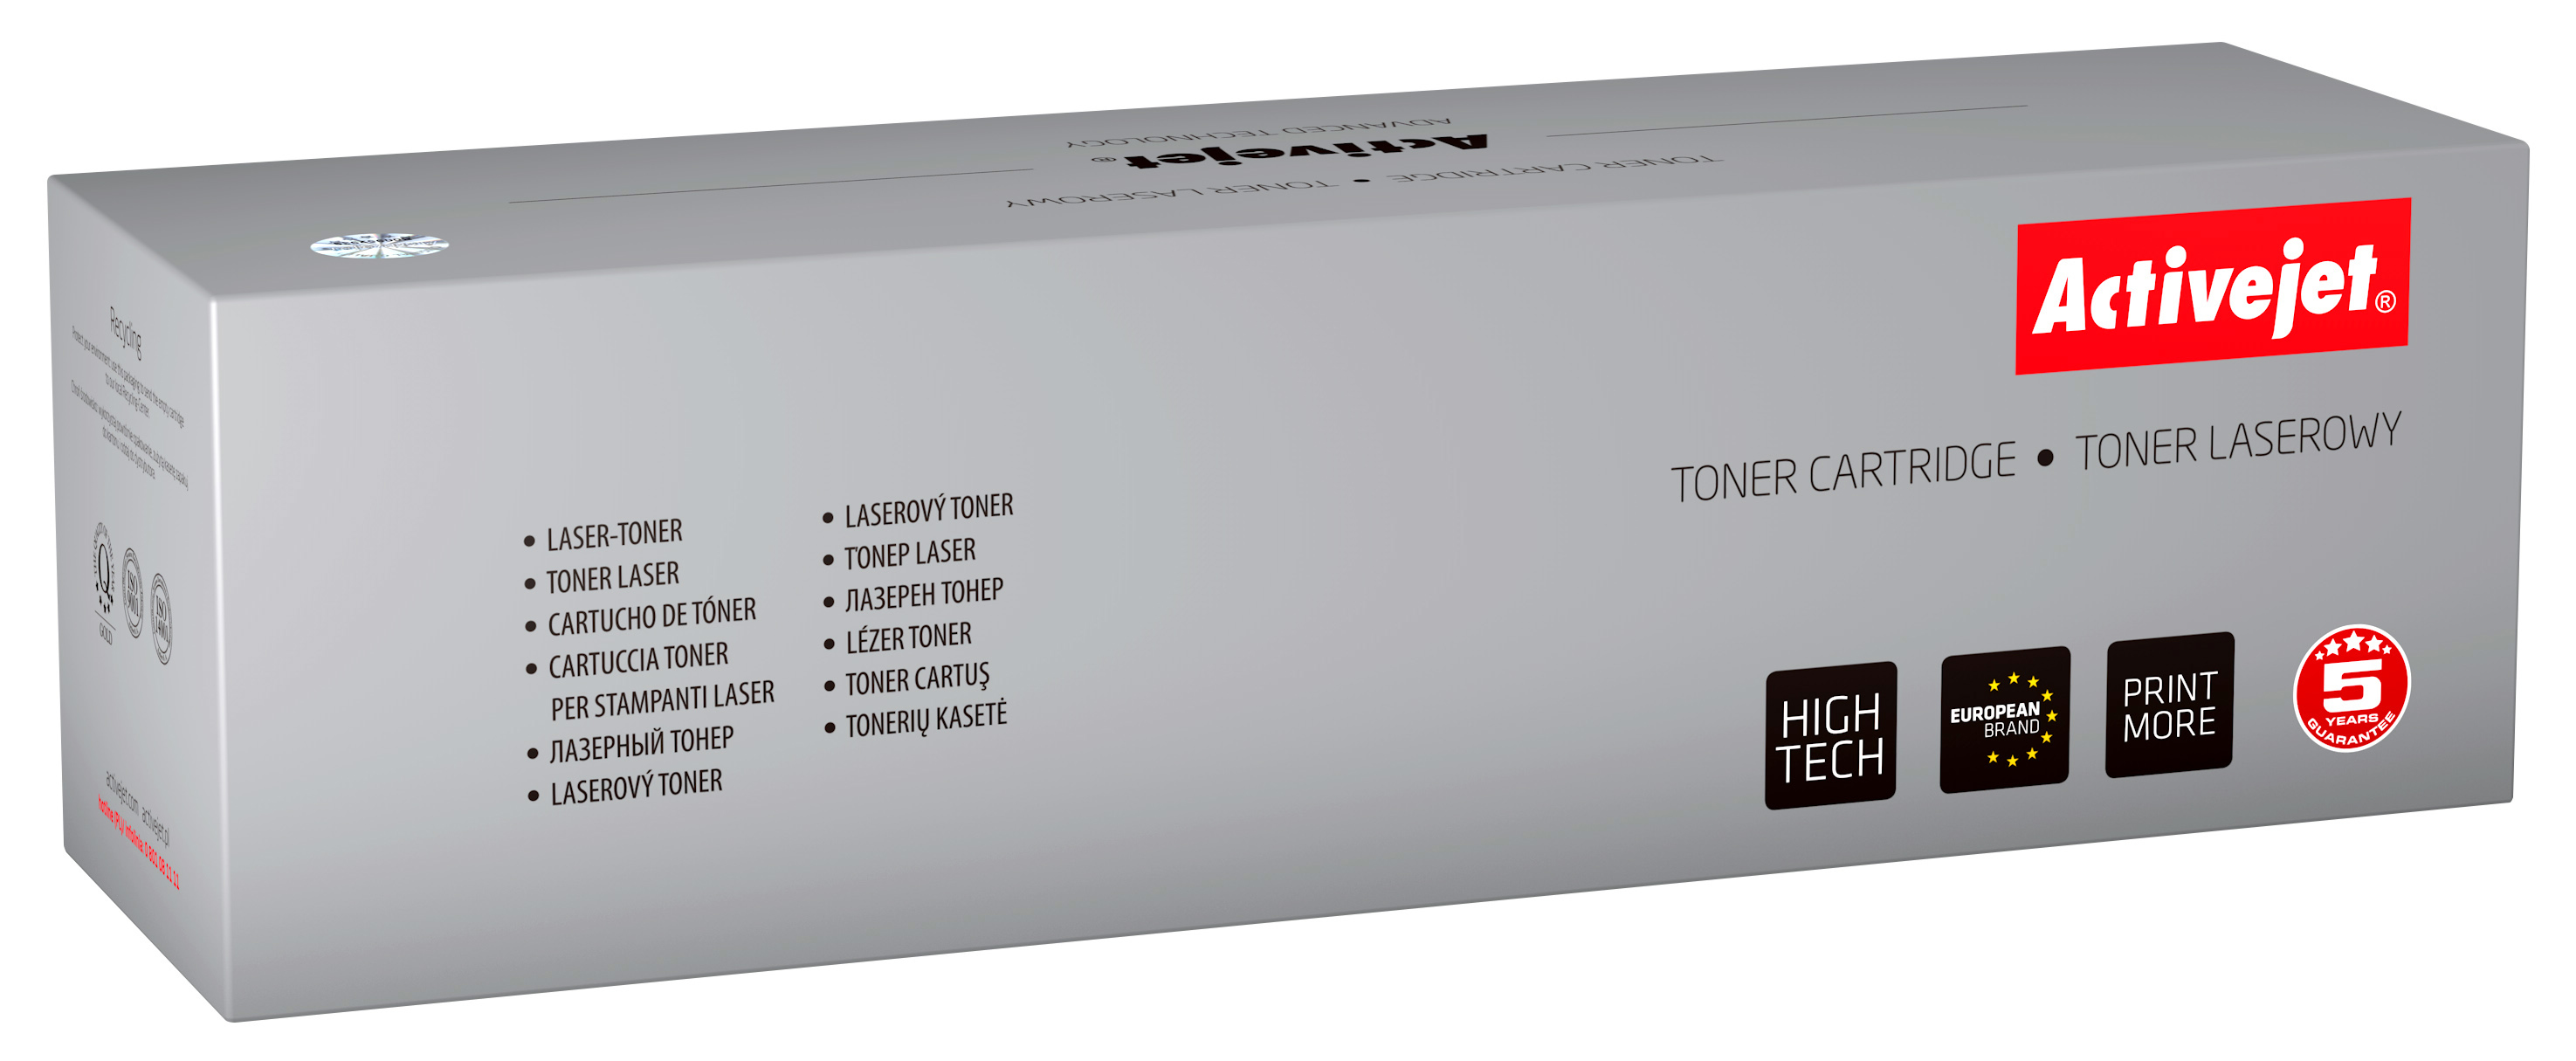 Activejet toner do Minolta TN324C new ATM-324CN